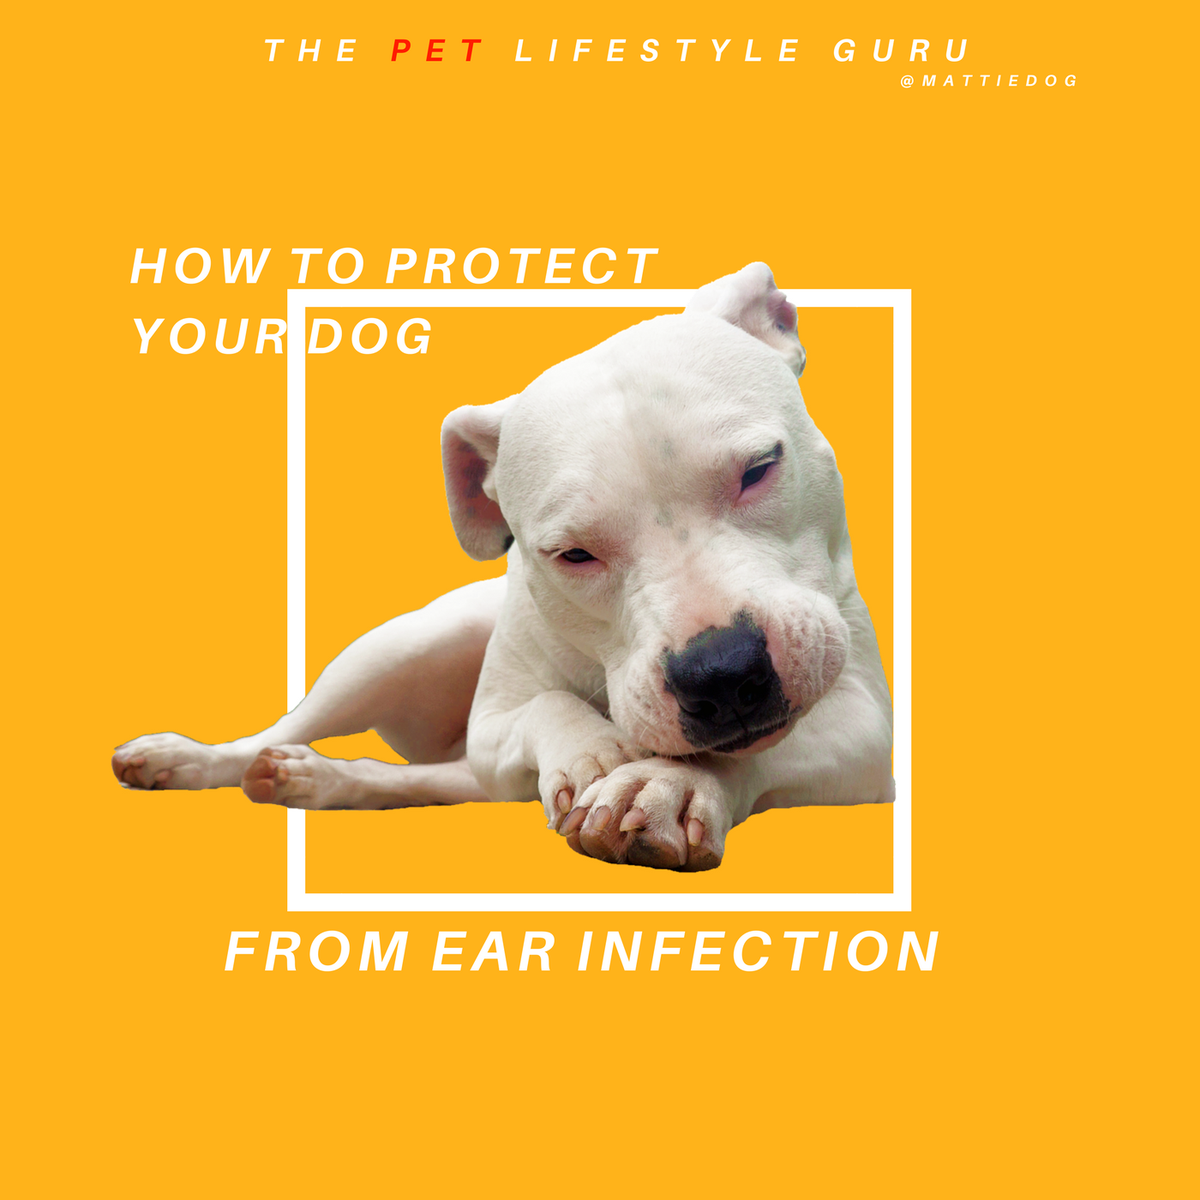 Learn how to prevent your dog's ear infections naturally with calendula! #holisticpet https://t.co/Wl8fdIntvx https://t.co/tpSC63Bc3X